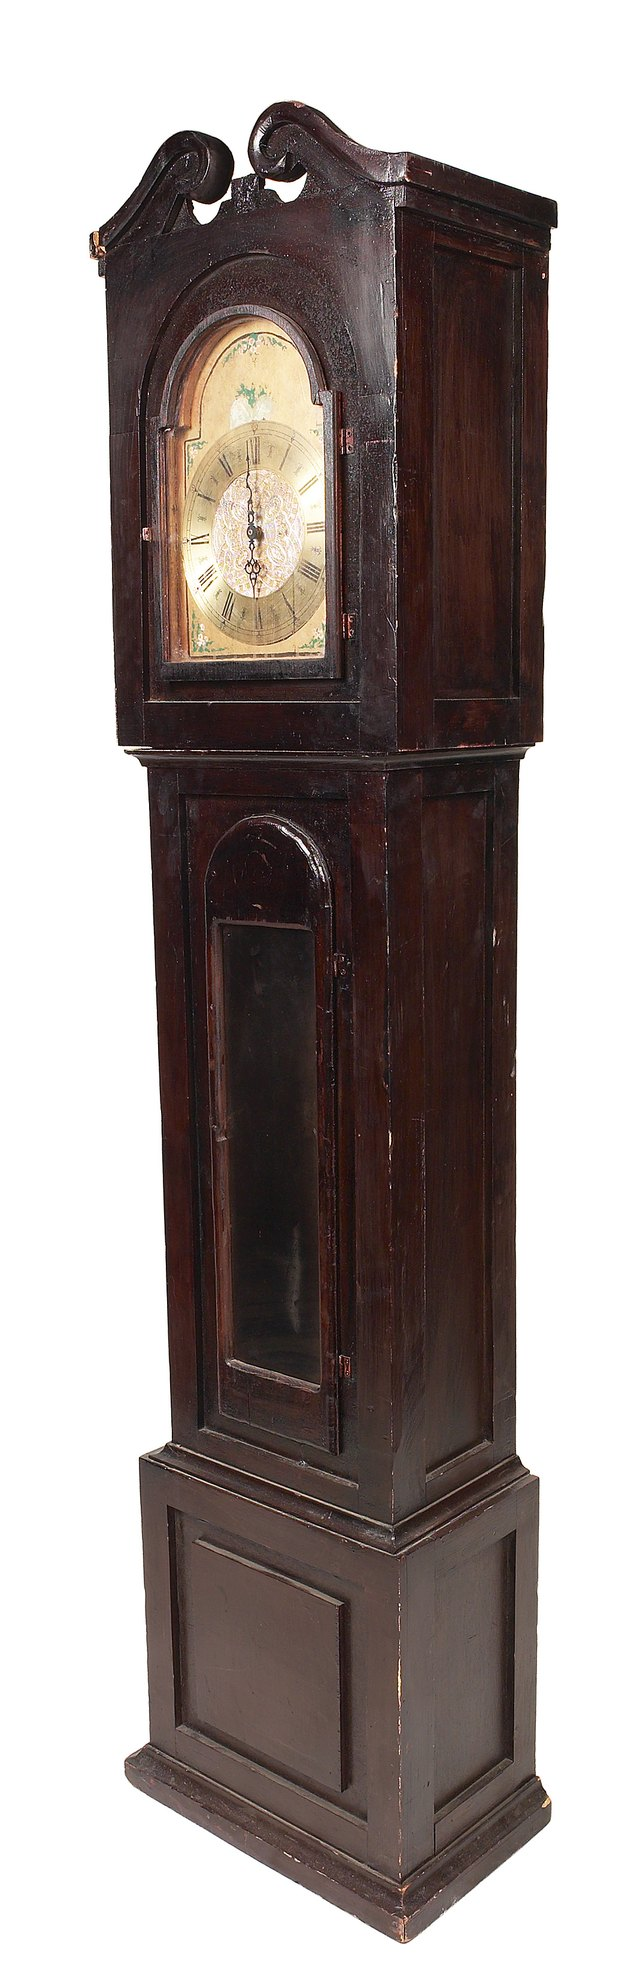 How To Set A Seth Thomas Grandfather Clock Hunker